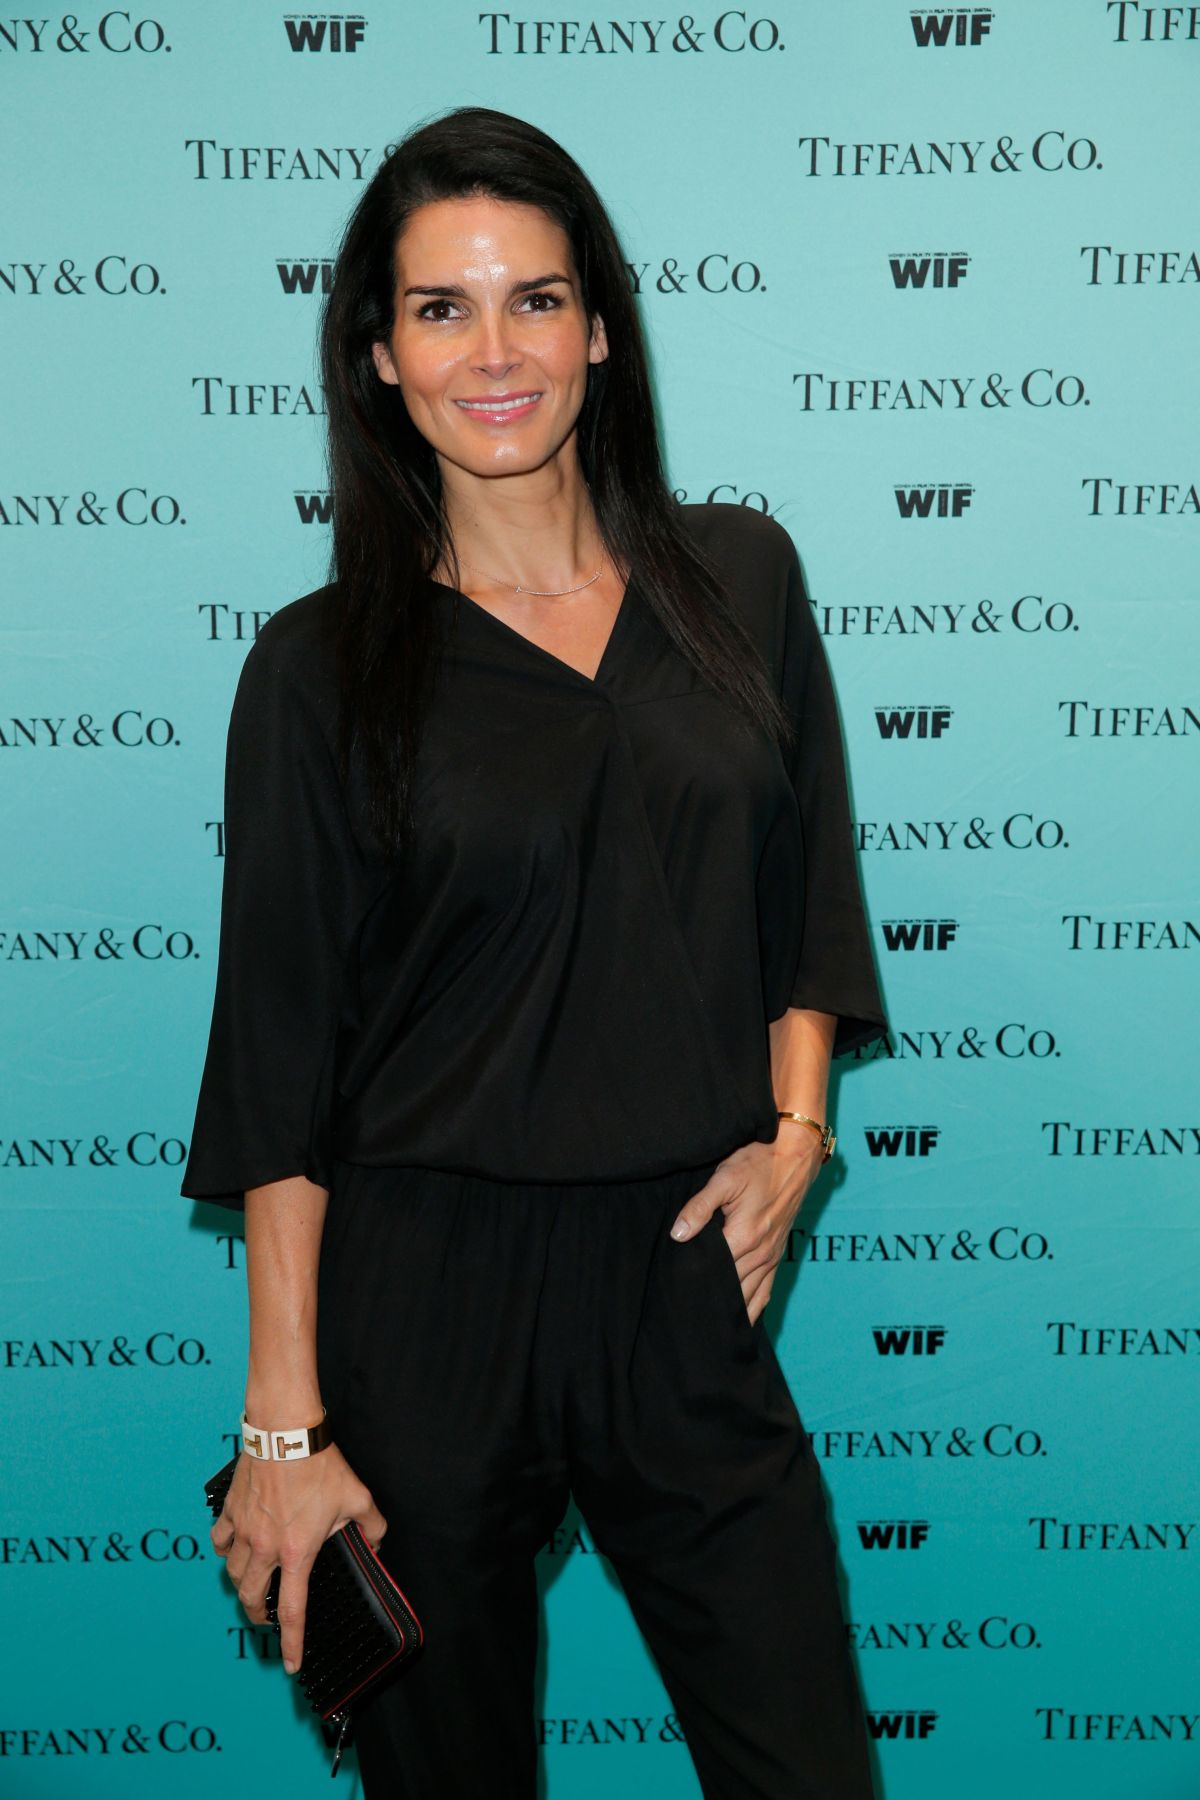 ANGIE HARMON at Tiffany & Co. and Women in Film Celebrate Sue Kroll in Beverly Hills